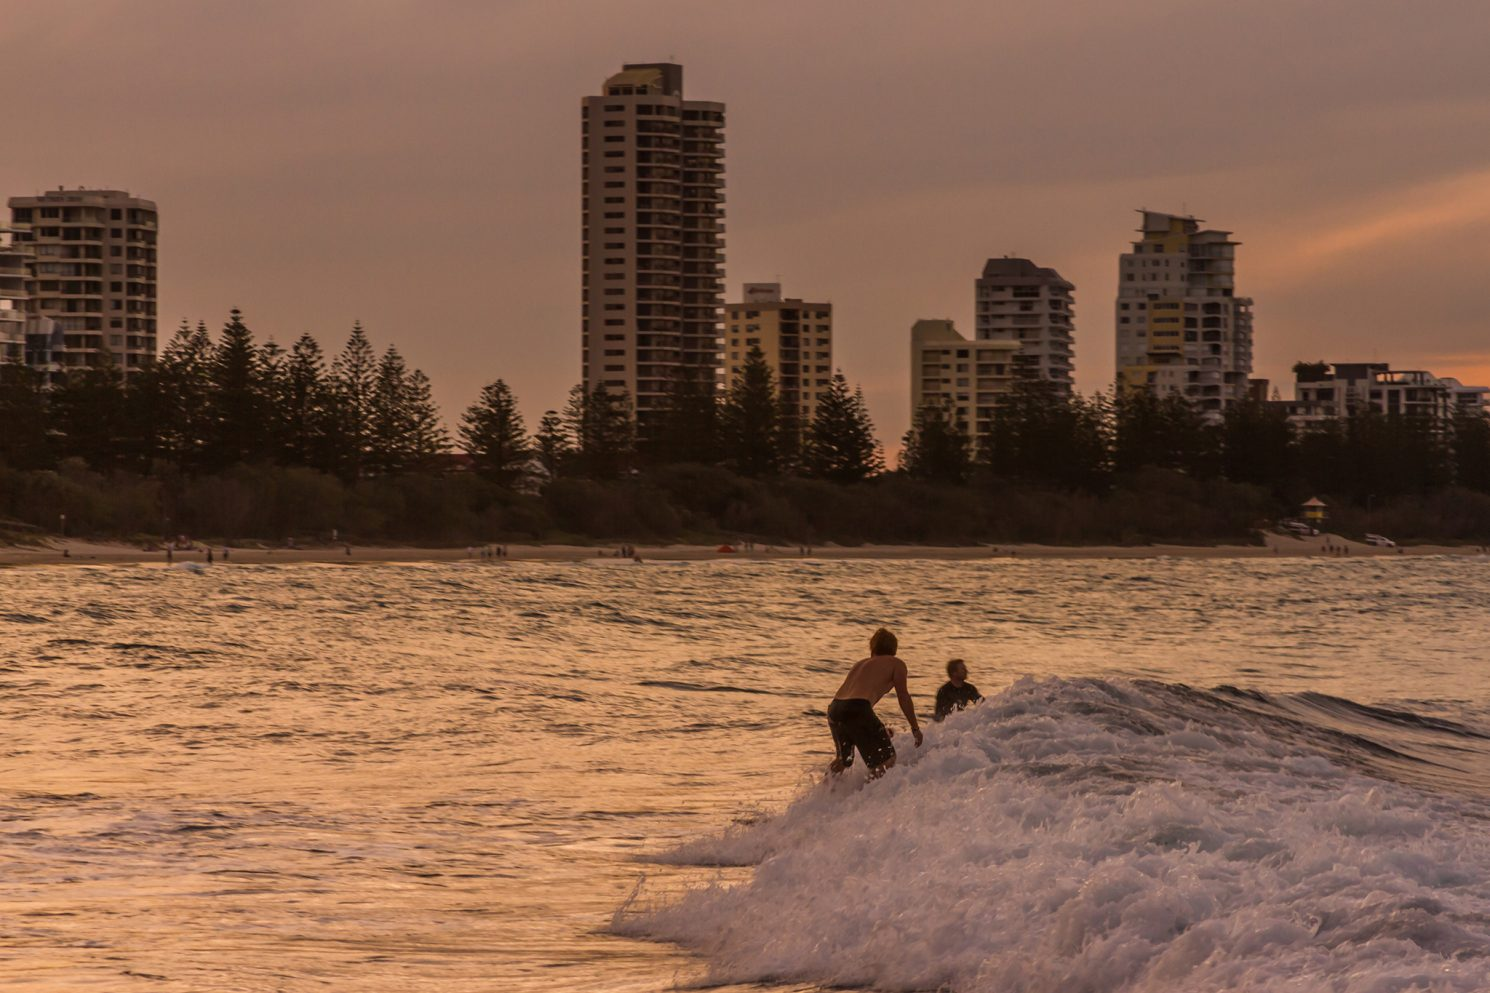 Surfers on the Gold Coast, Queensland in Australia from Burleigh Head on Mallory on Travel adventure, adventure travel, photography Iain Mallory-300-28 queensland_surfers